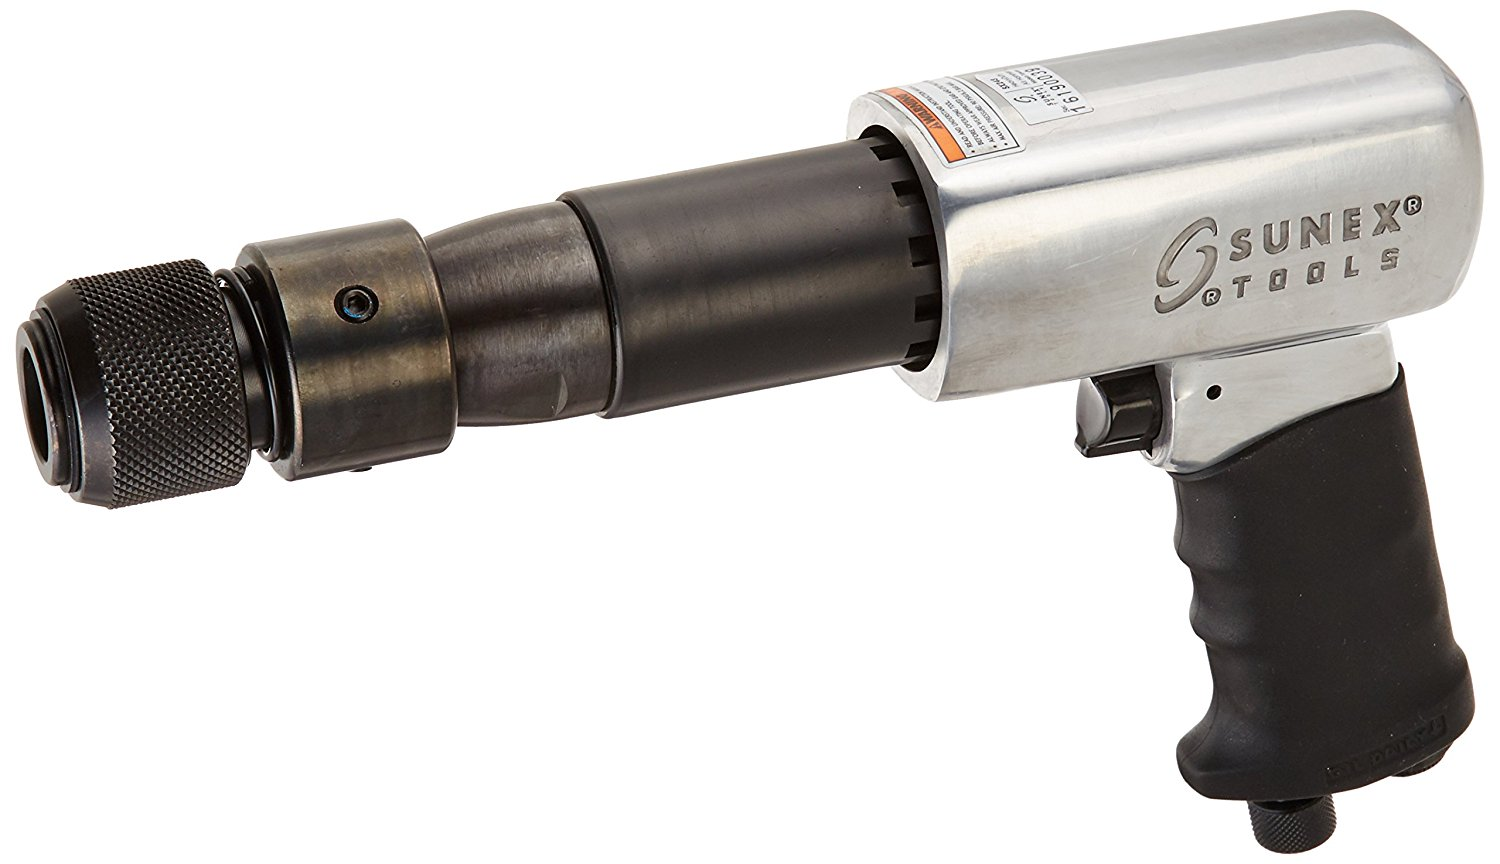 Sunex 250-Mm Long Barrel Air Hammer – Aluminum Alloy Construction, Ergonomic Grip